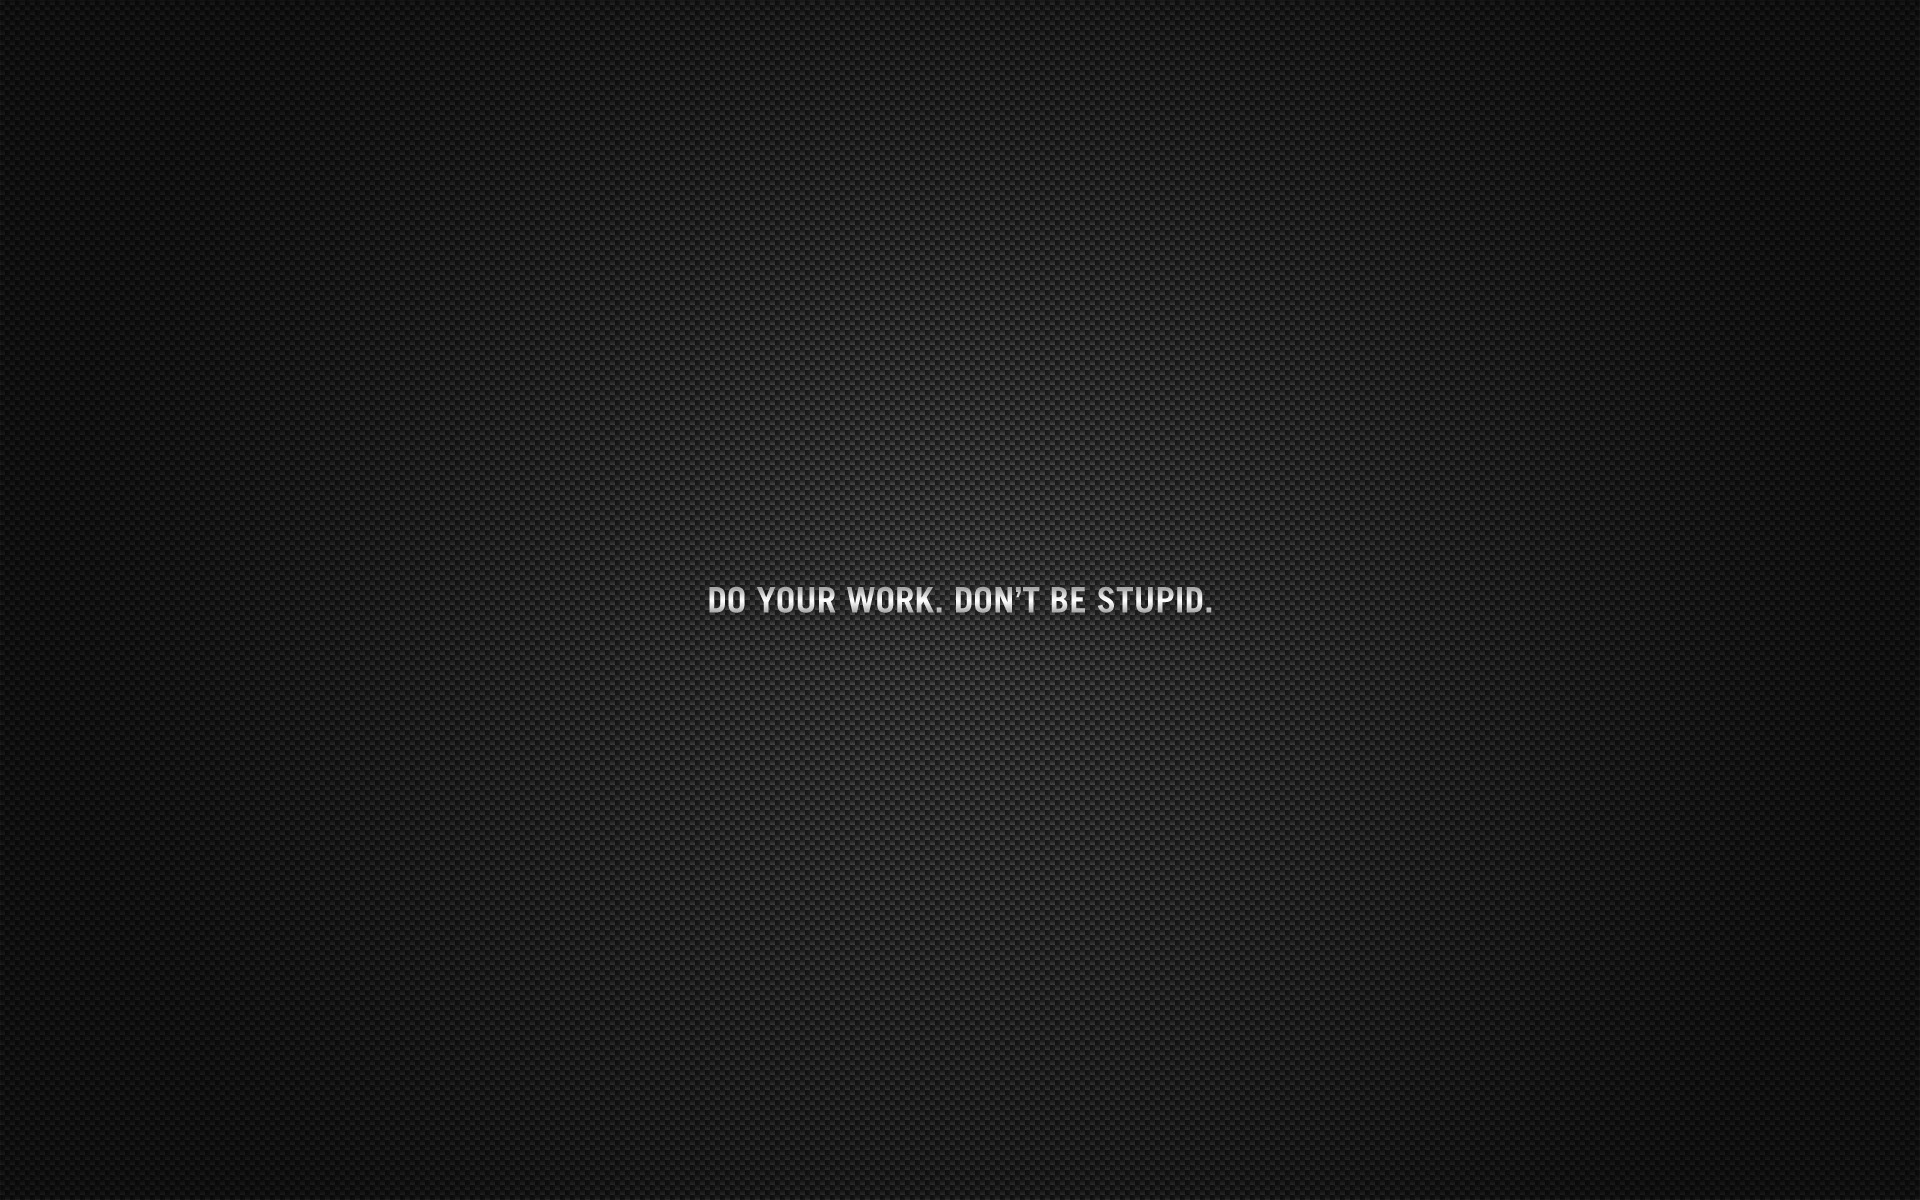 Work Wallpapers Get Back To Work HD Wallpapers Get Back To Work 1920x1200